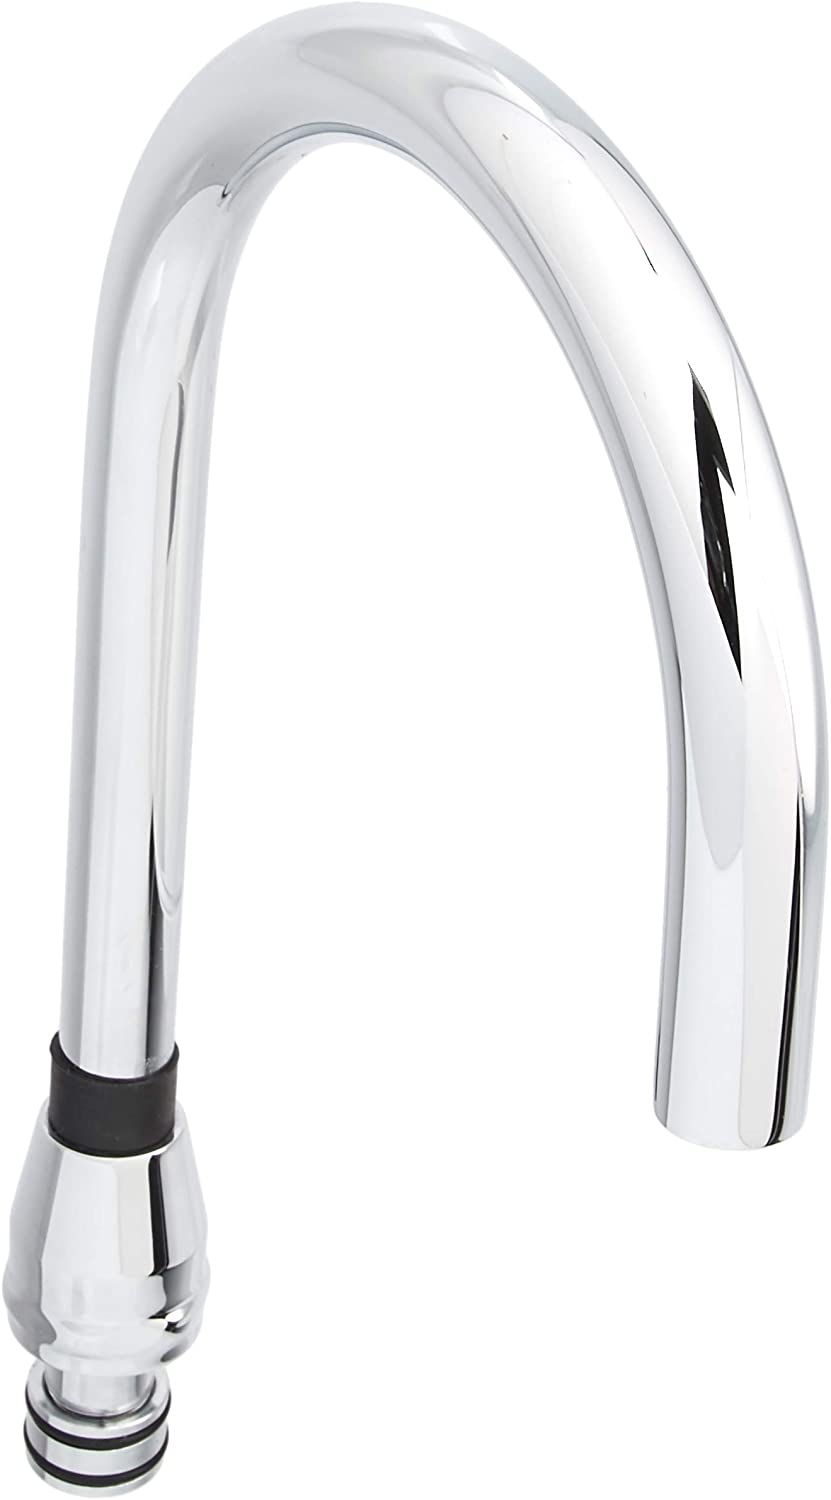 Moen S0030NA Commercial Parts & Accessories Bathroom Accessory Chrome